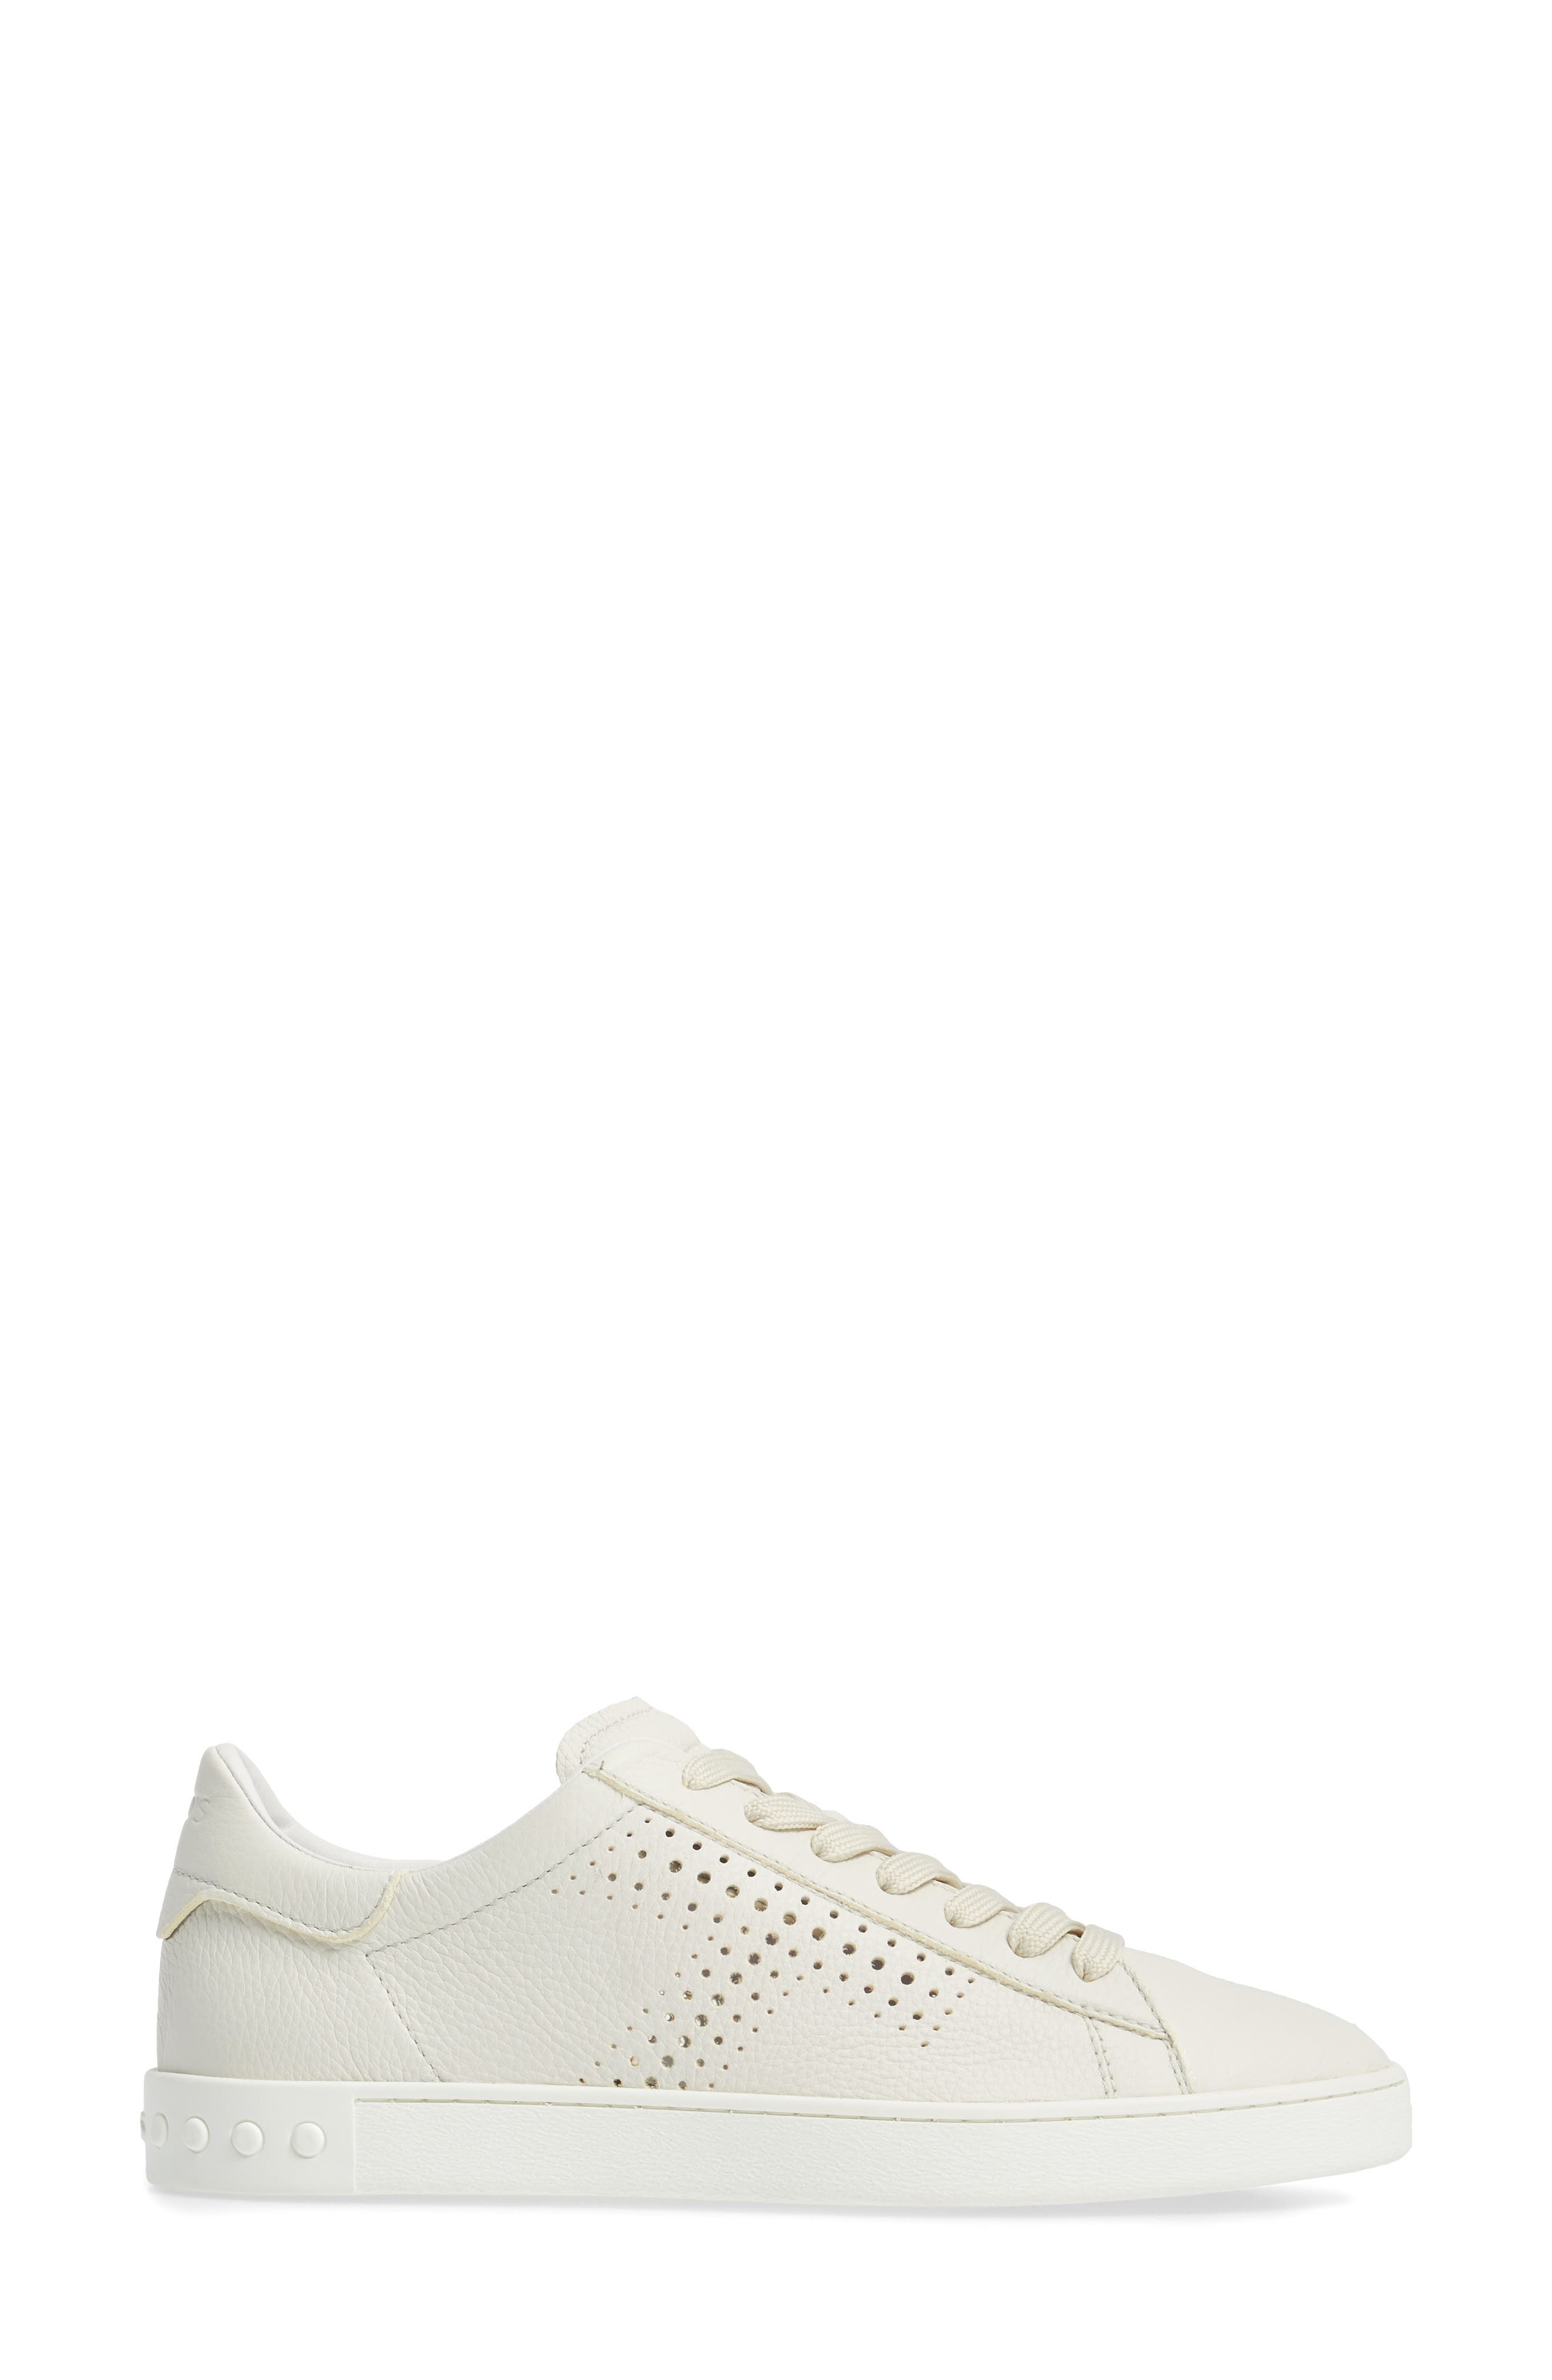 Tods Perforated T Sneaker,                             Alternate thumbnail 3, color,                             100